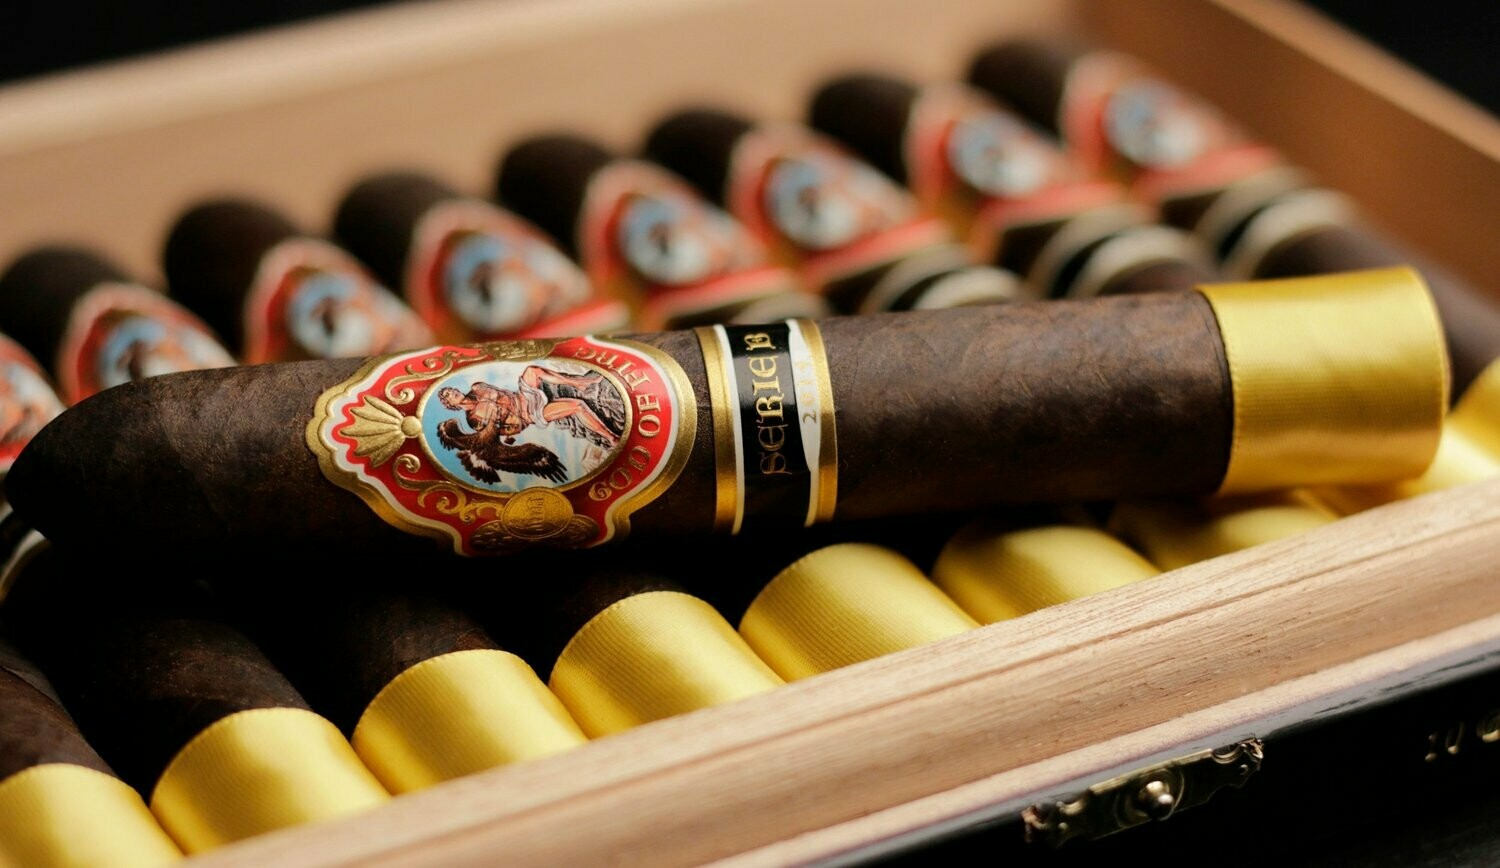 GOD OF FIRE SERIE B 2015 - MADURO (GRAN TORO 6x56) BOX OF 10